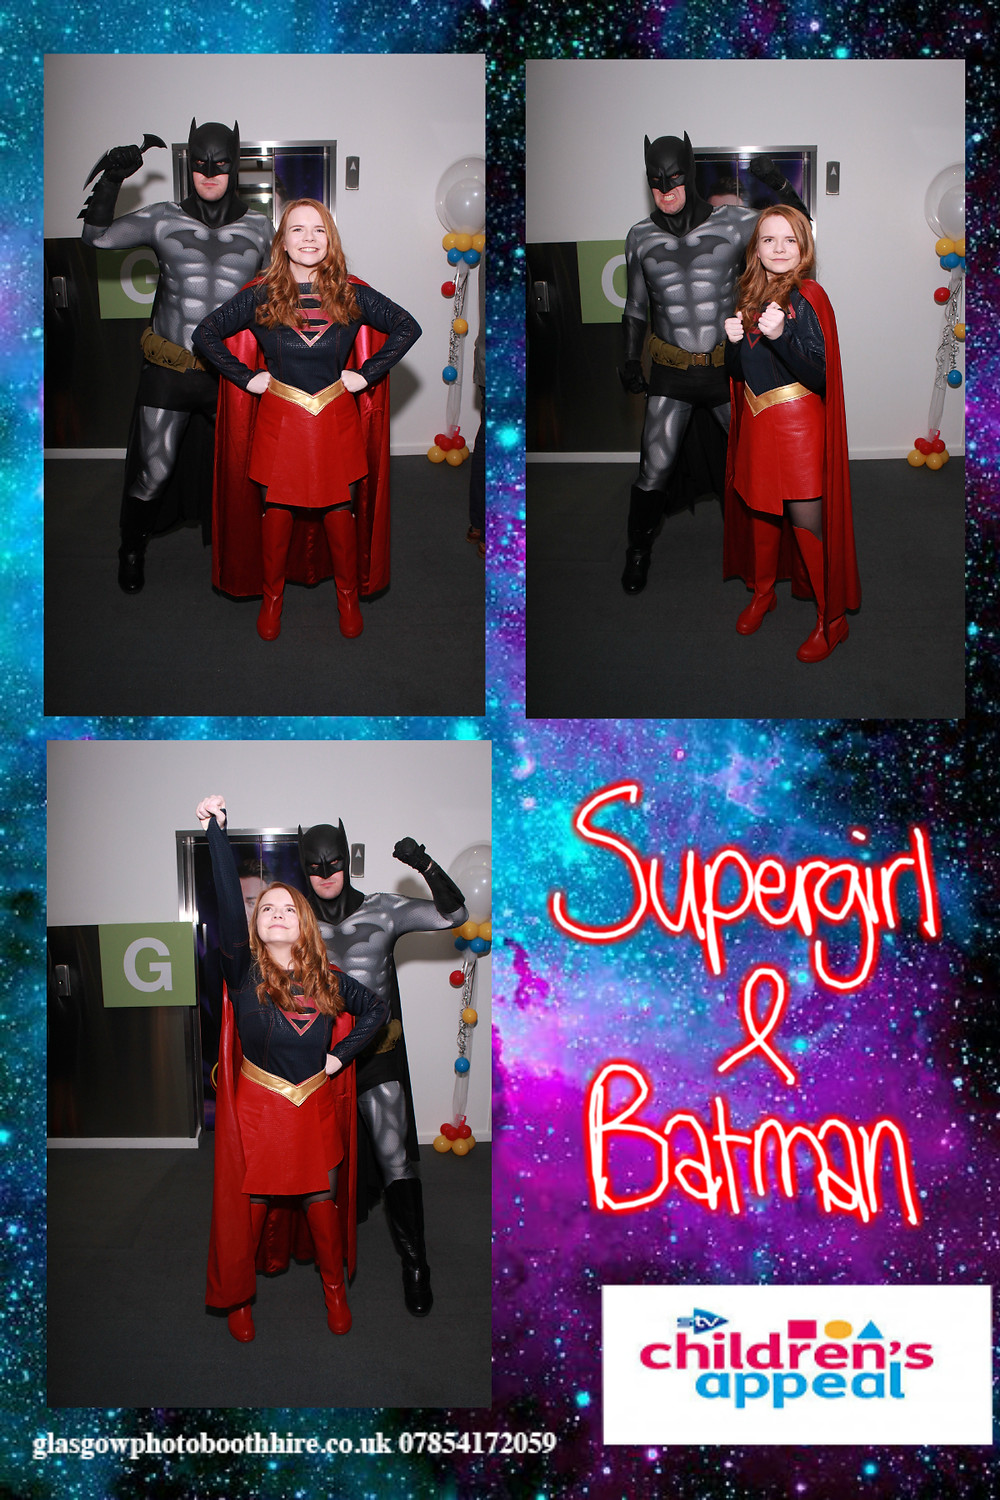 Batman & Supergirl at the Stv Children's Appeal